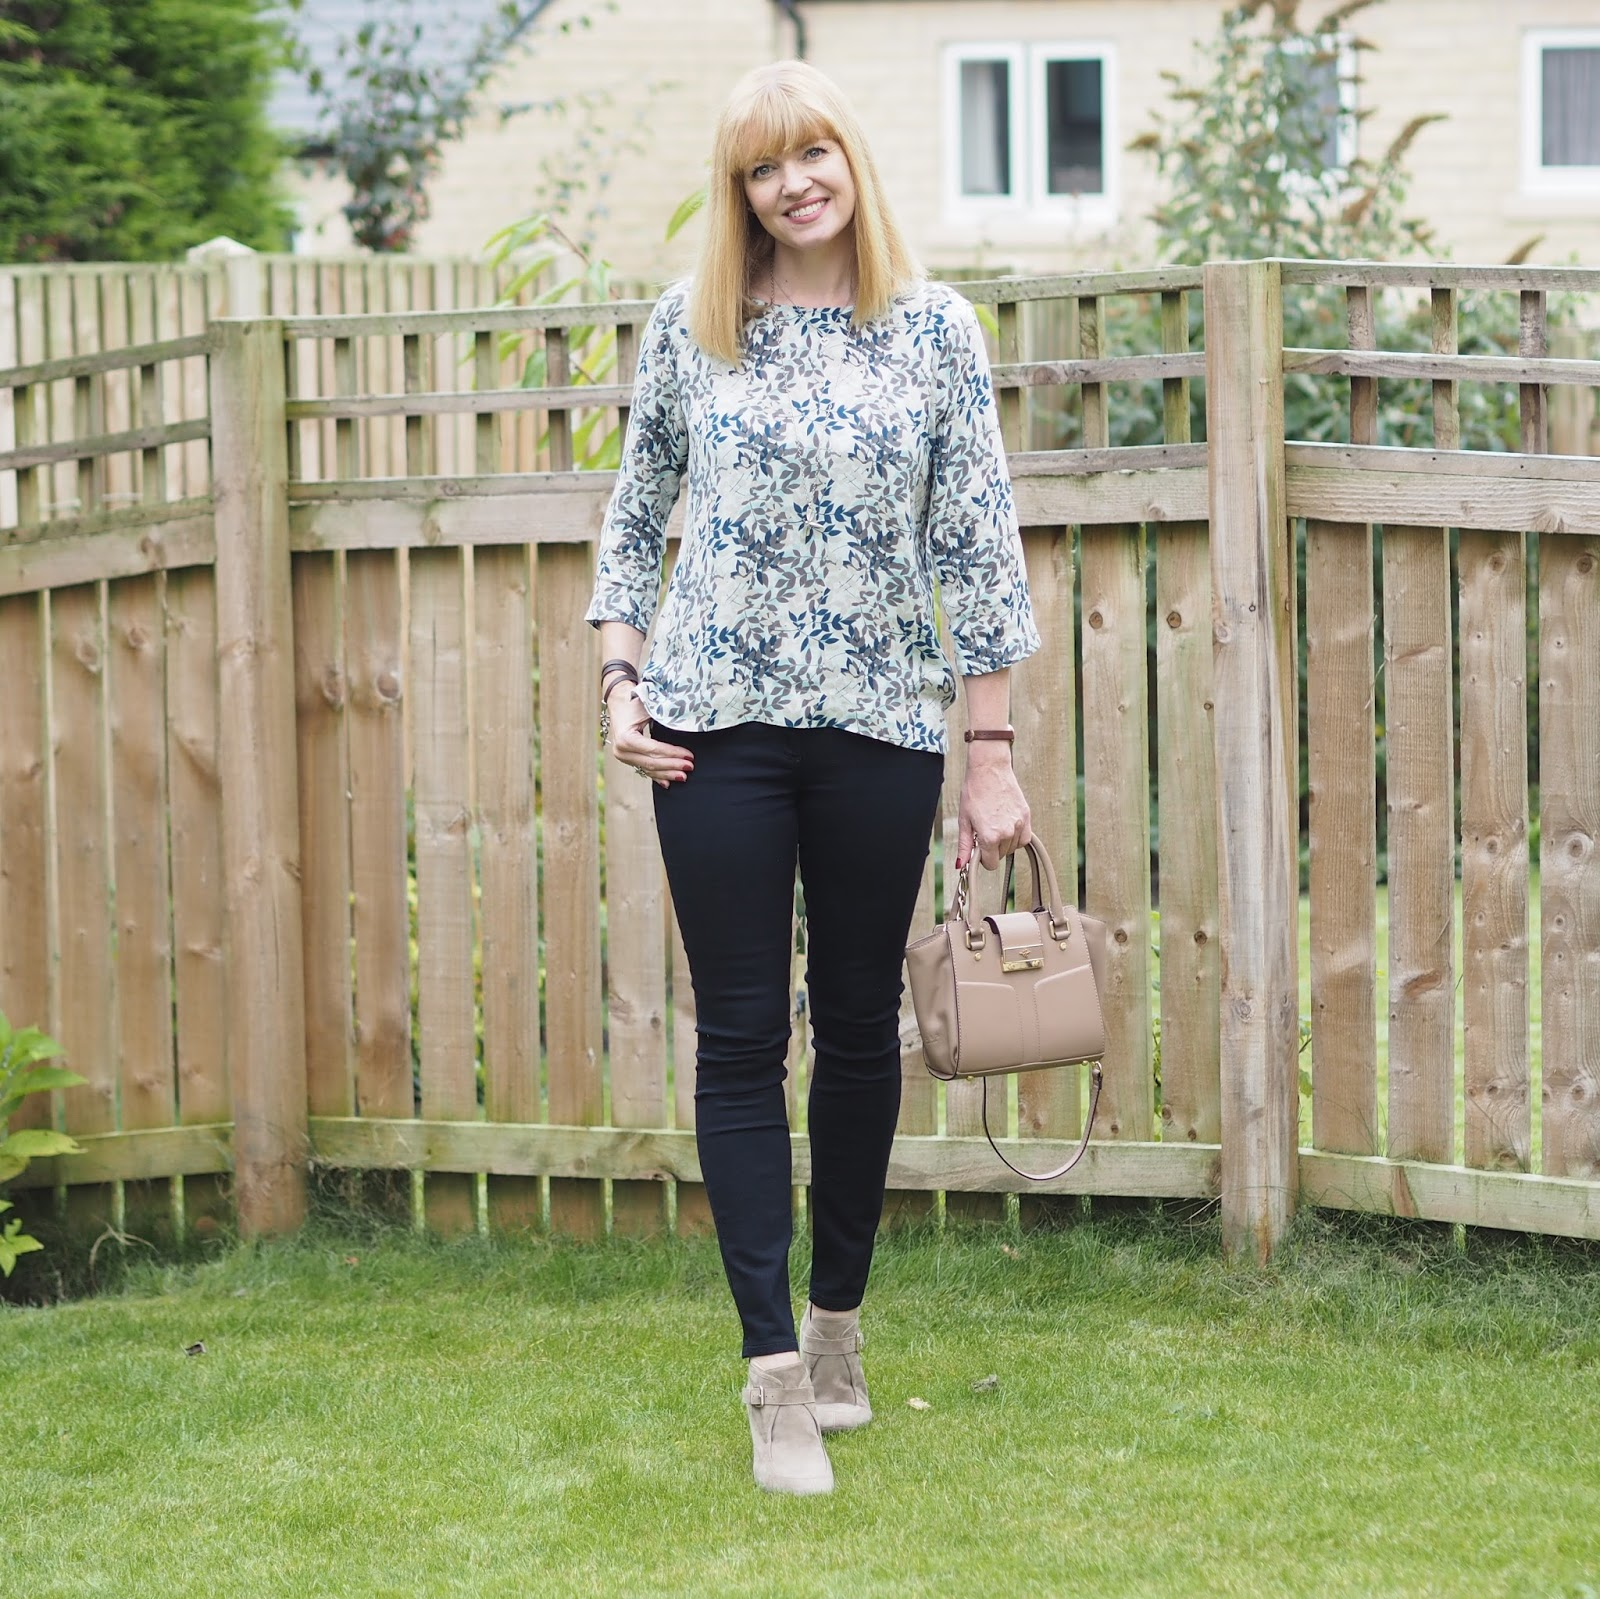 The Tulchan leaf blouse and skinny jeans